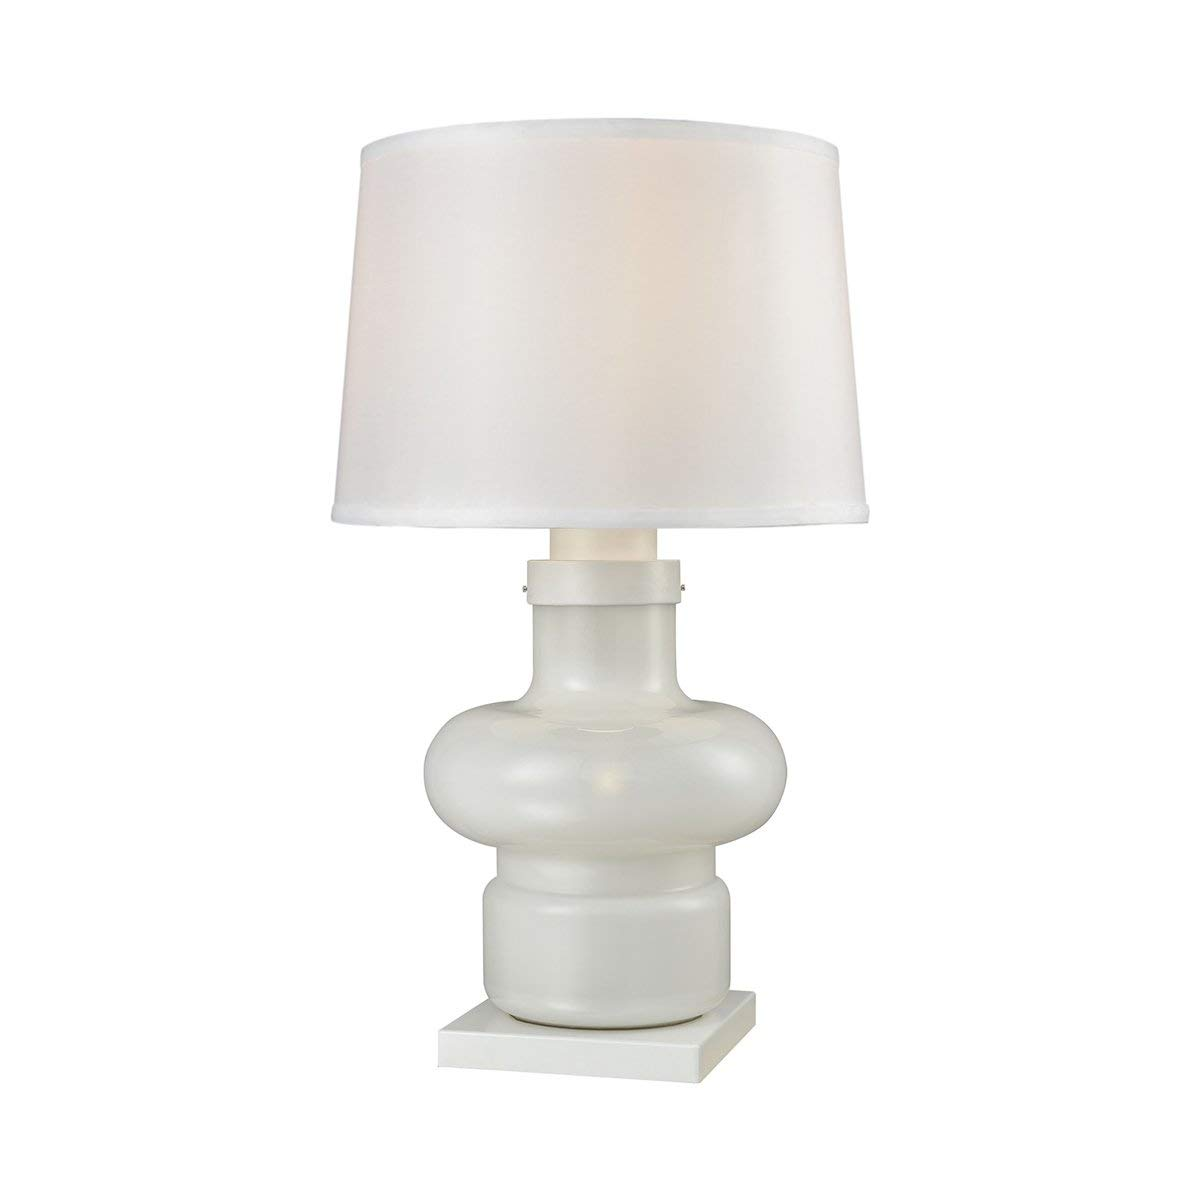 Dimond D3293 Sugar Loaf Cay Outdoor Table Lamp, 1-Light 100 Watts, Milk Glass